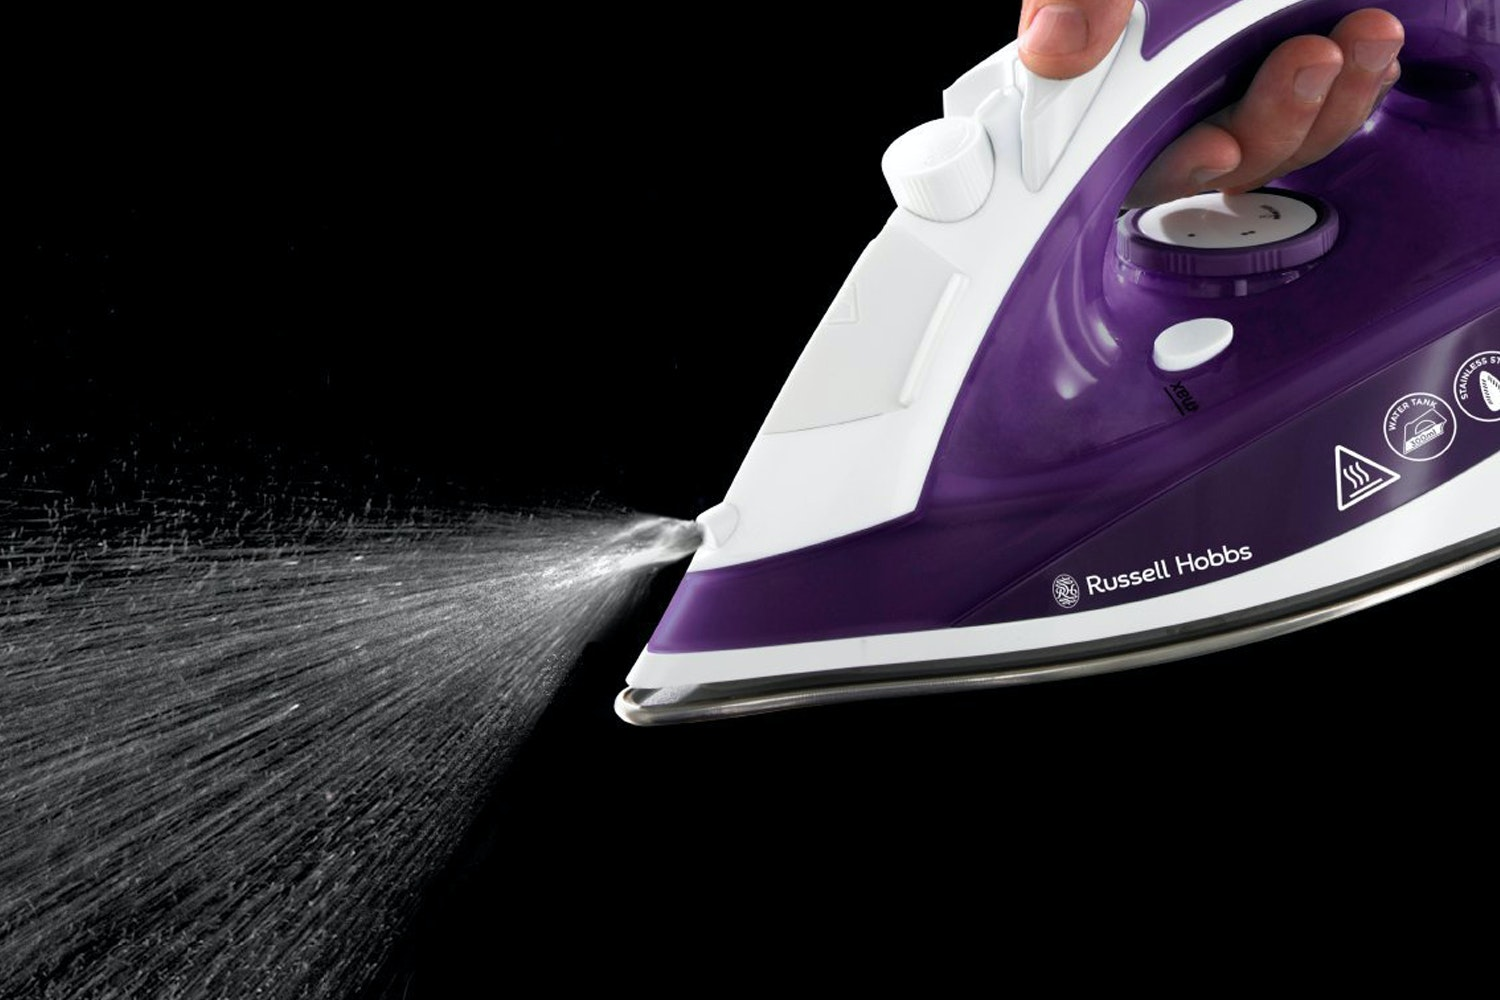 Russell Hobbs 2400W Supreme Steam Iron | 23060